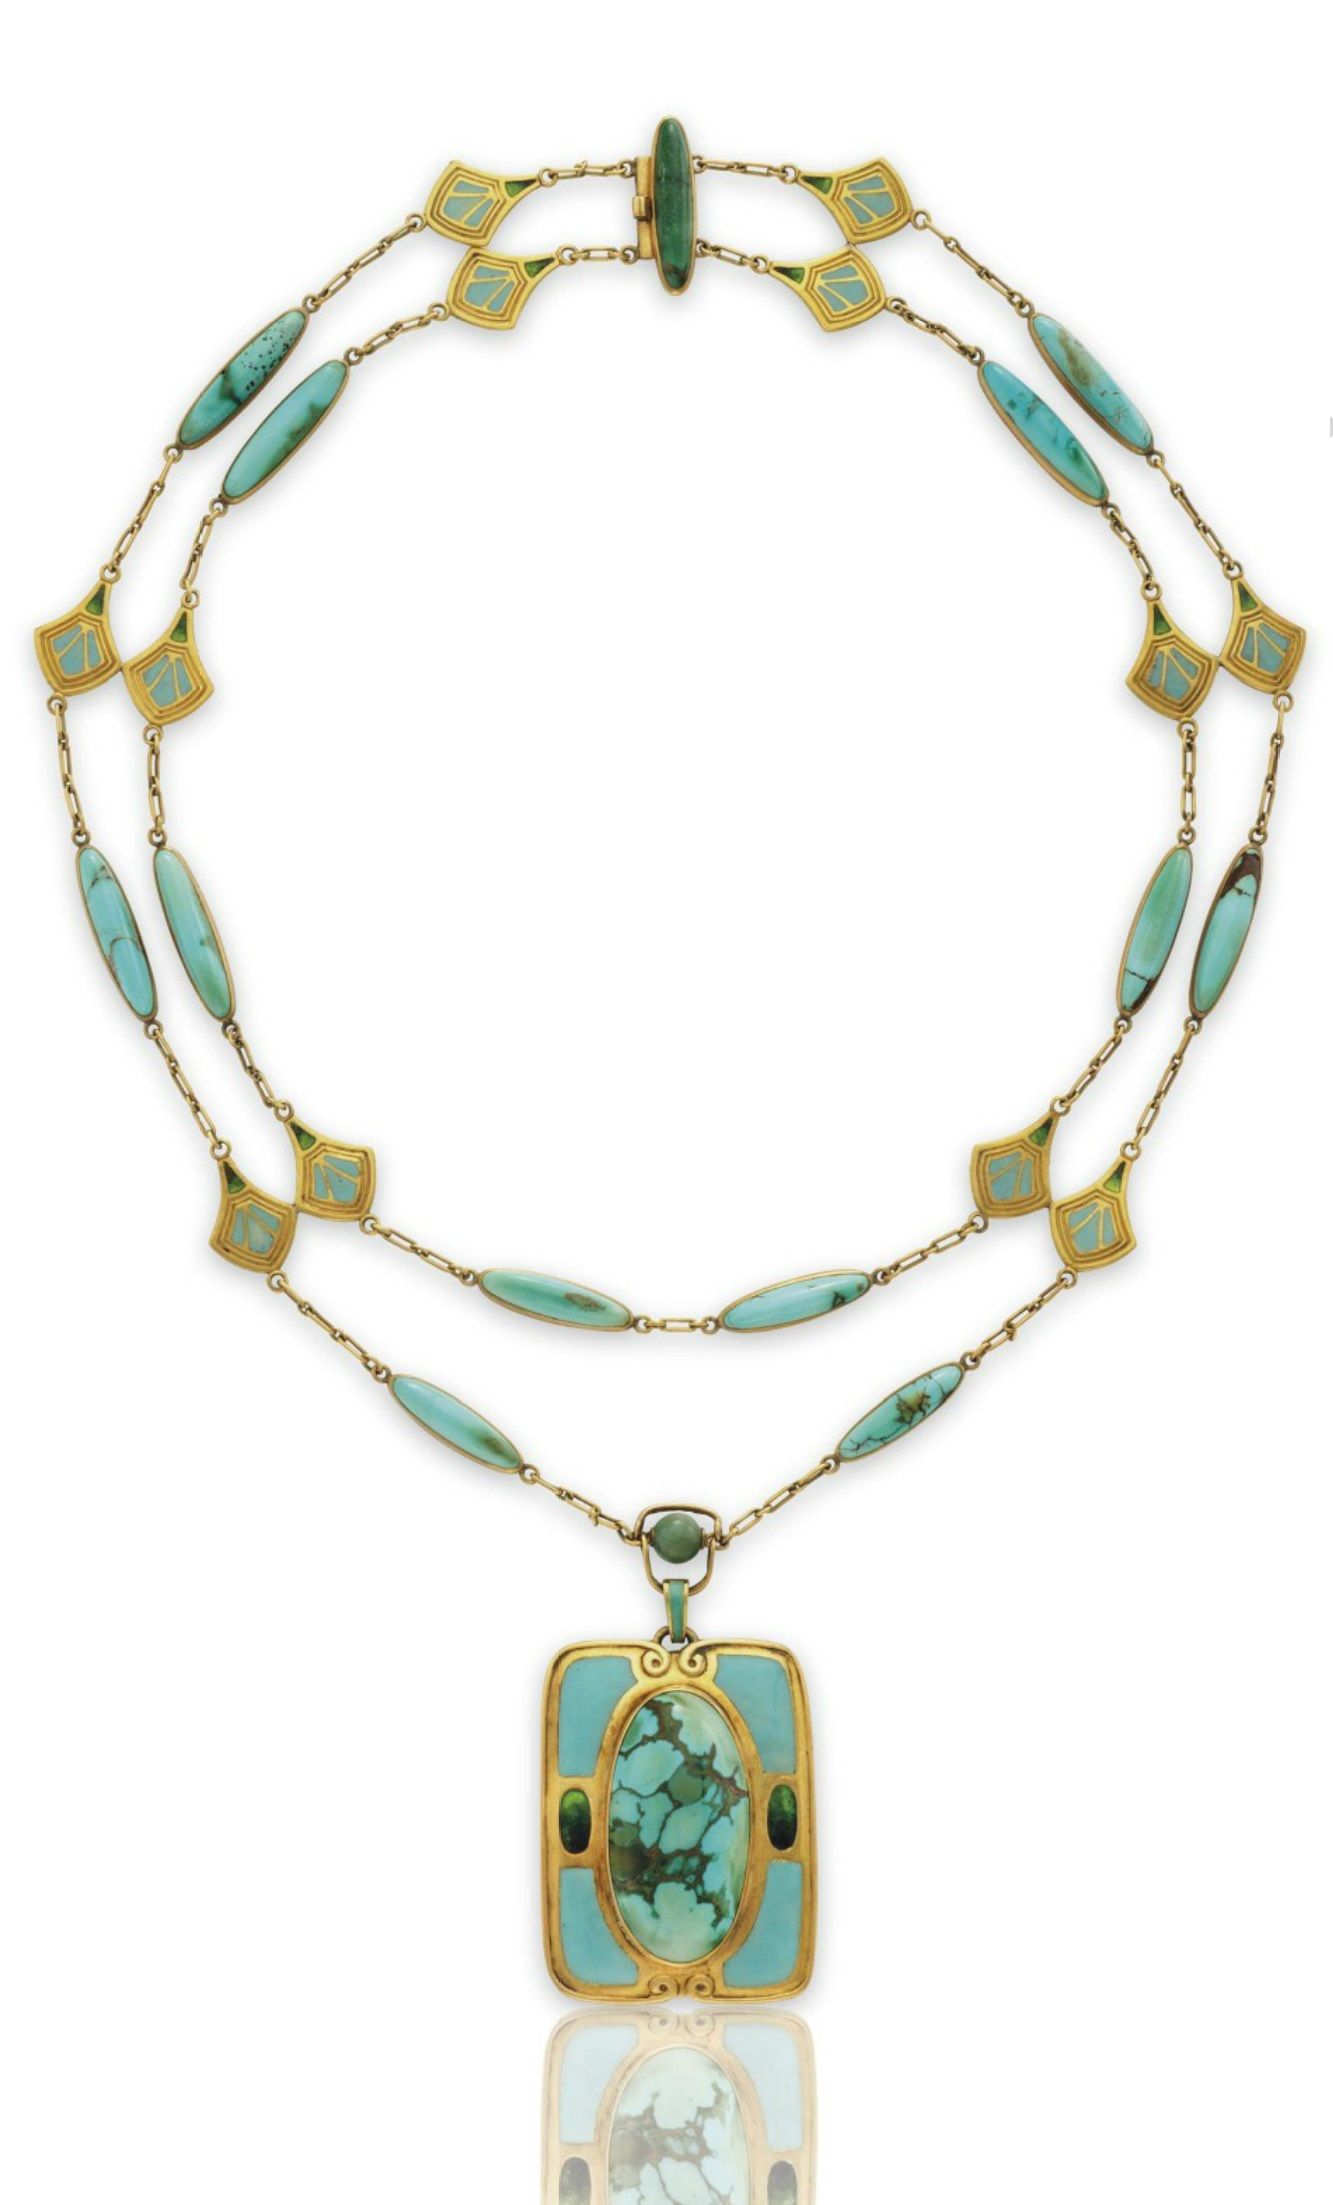 Louis Comfort Tiffany Tiffany Co A Turquoise Enamel And Gold Necklace Circa 1910 Suspending A Rectangular Gr Tiffany Necklace Necklace Tiffany Jewelry